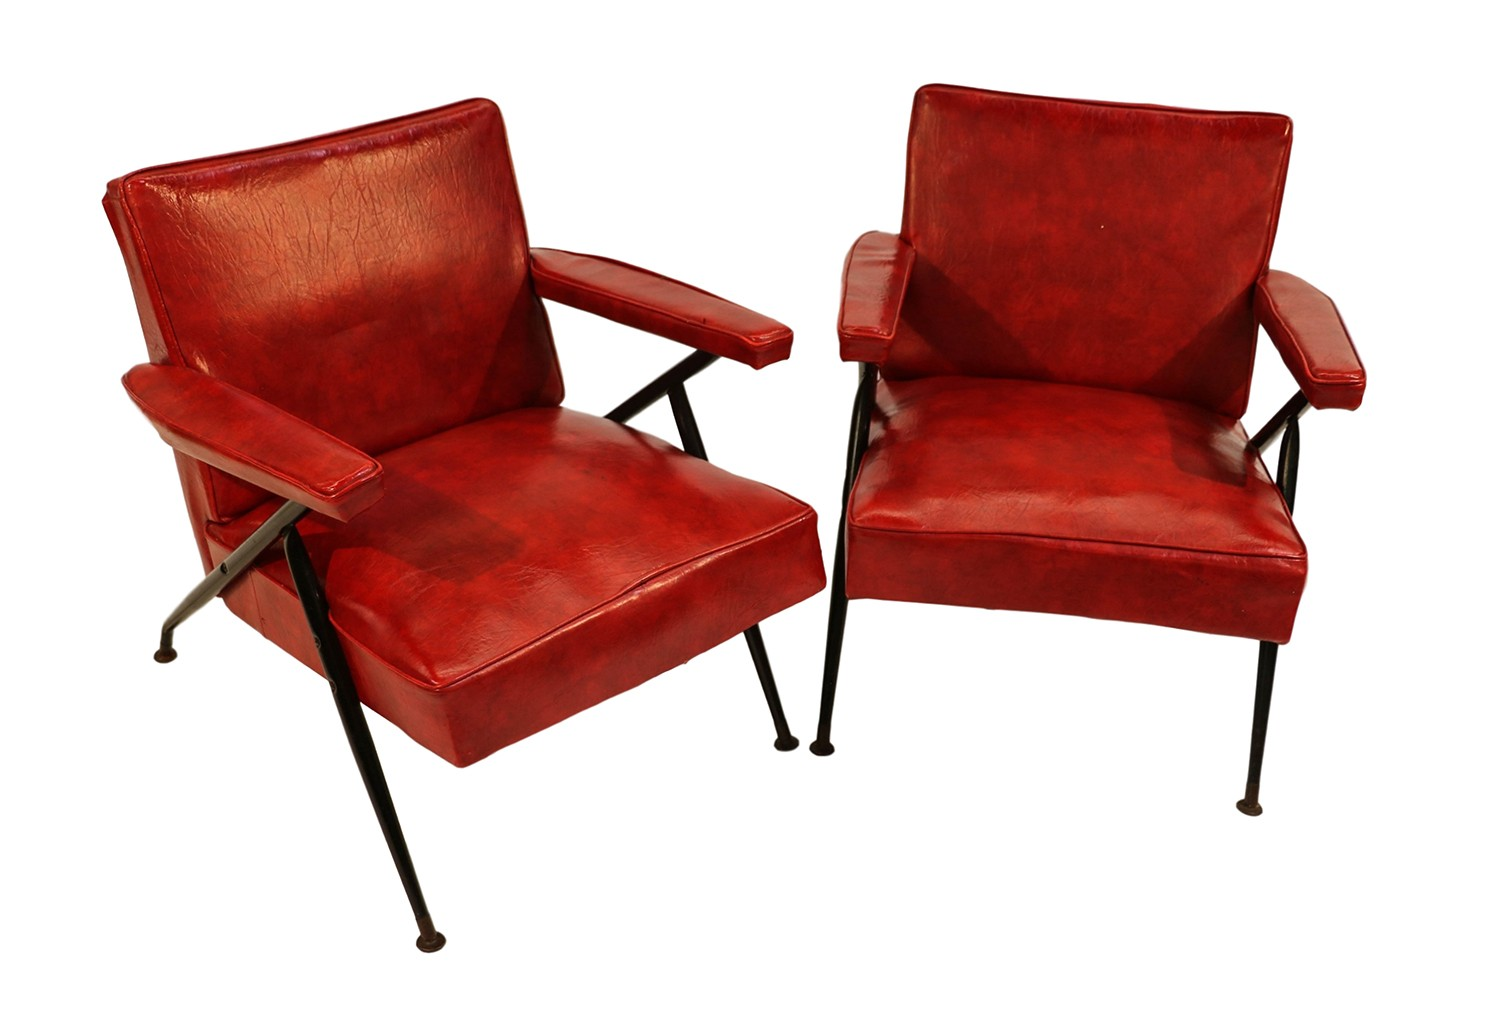 red lounge chair best office chairs for back pain pair viko baumritter